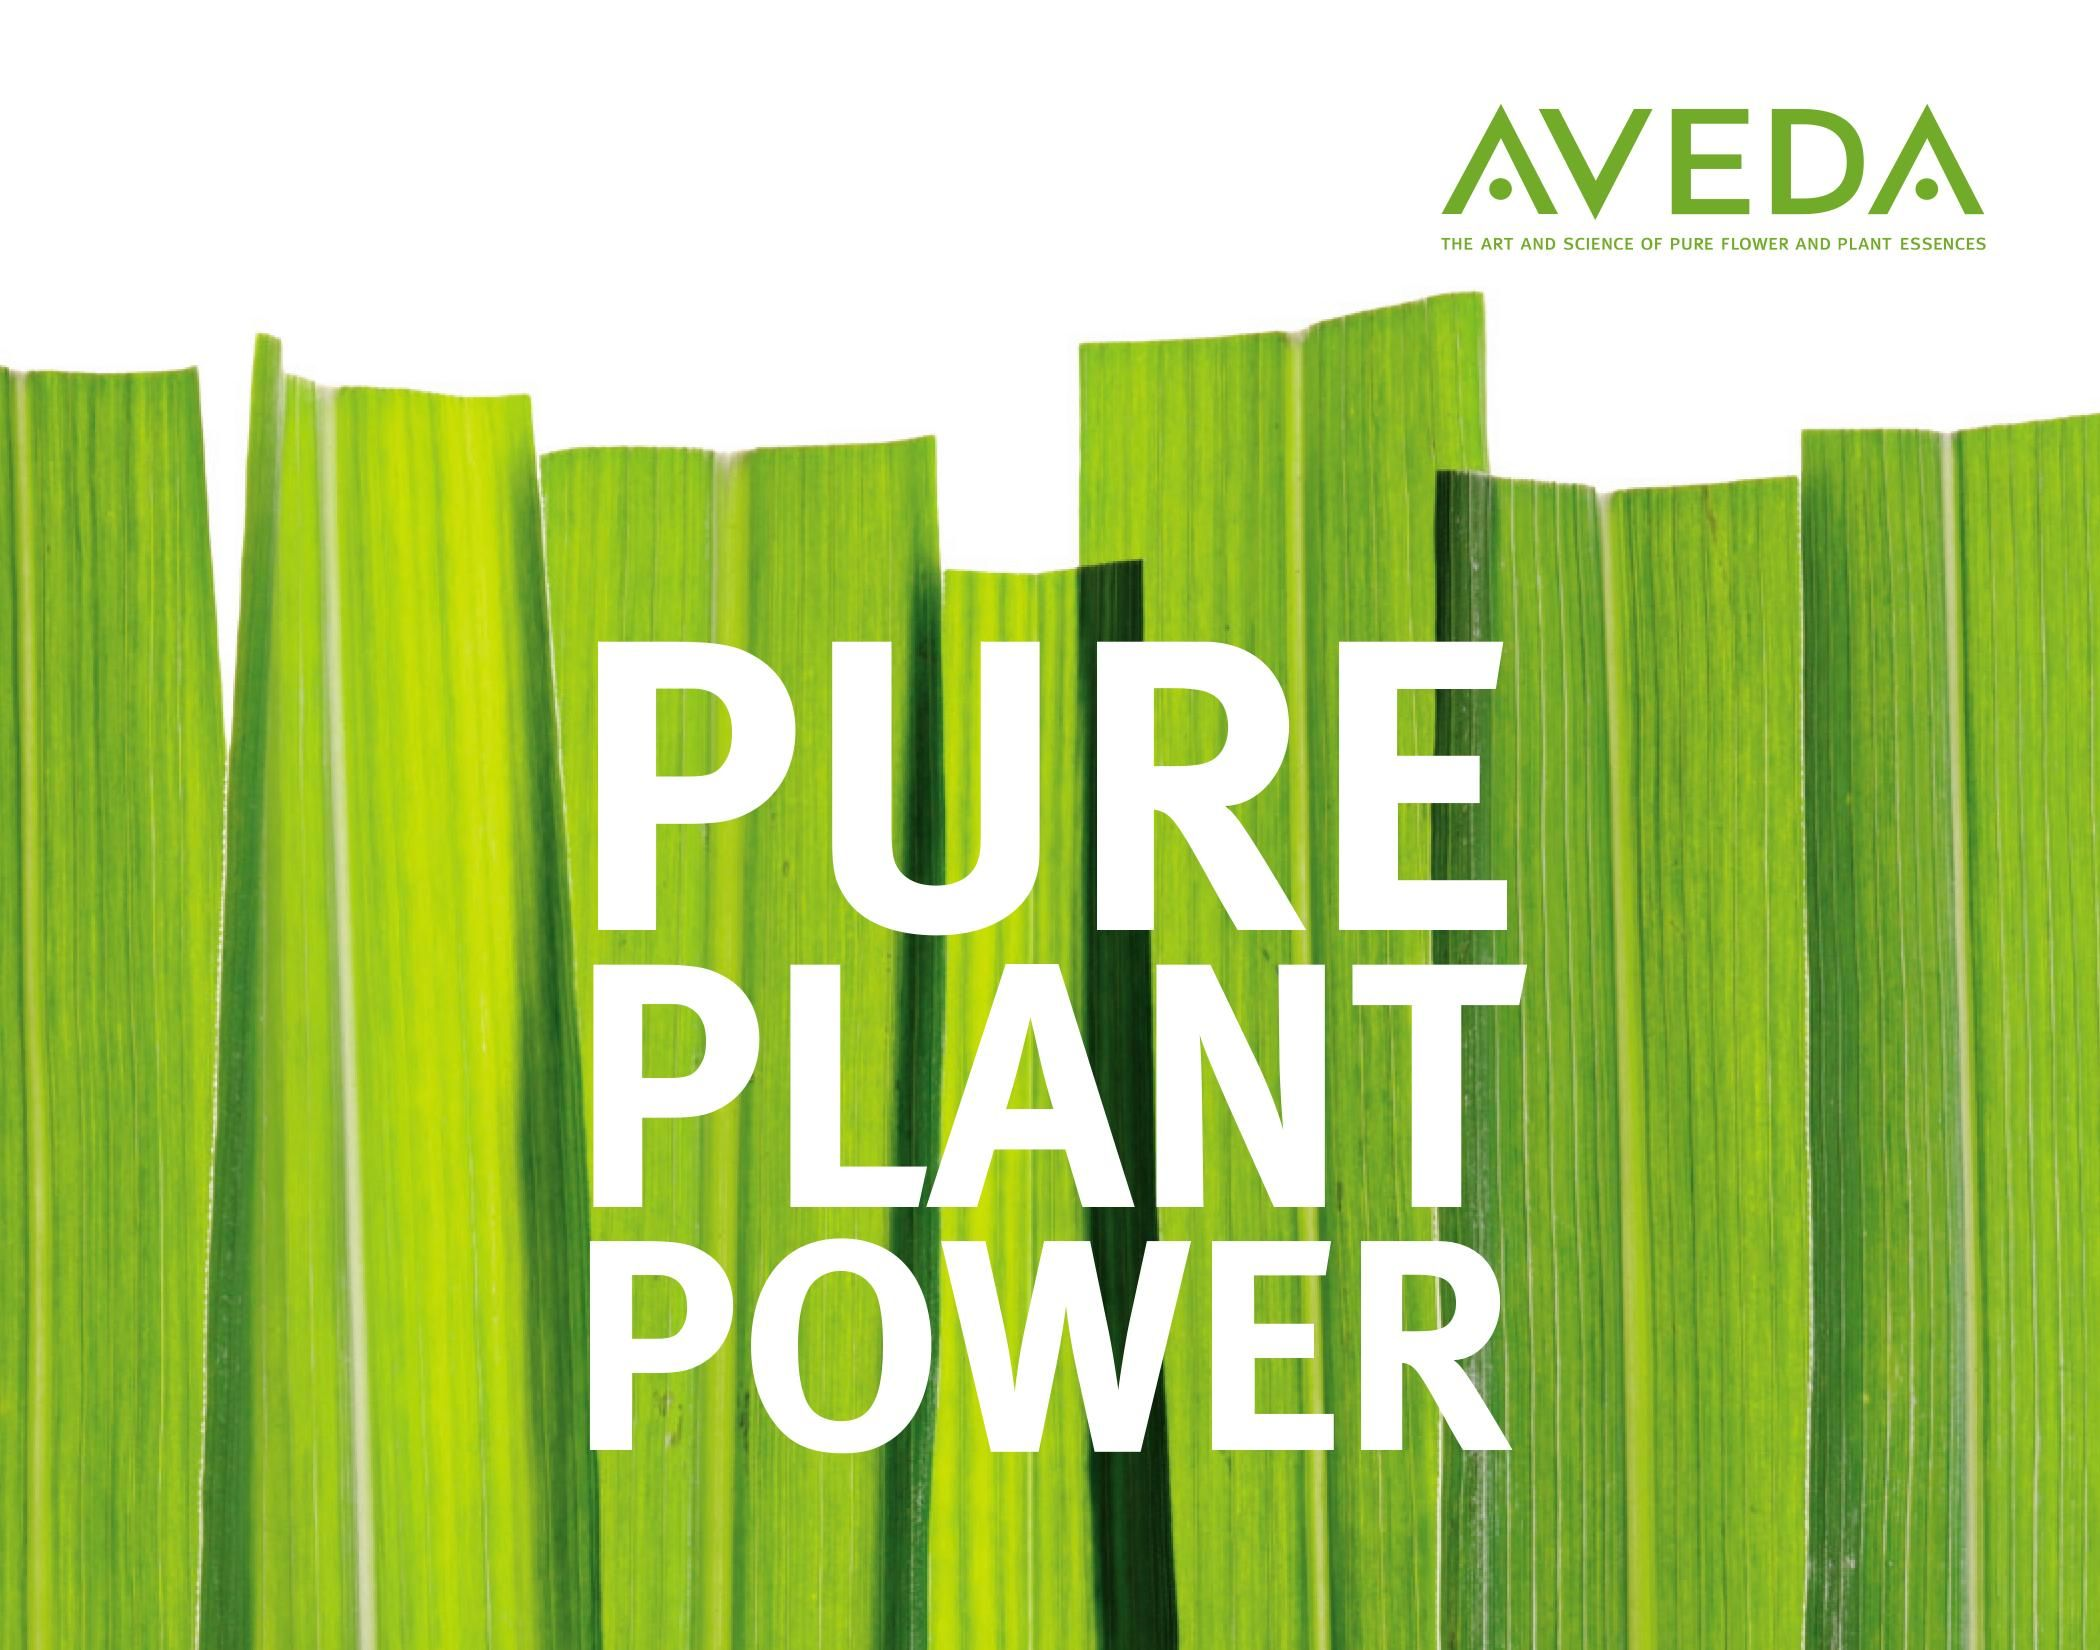 Aveda AVEDA Pure Plant Power Aveda, Pure products